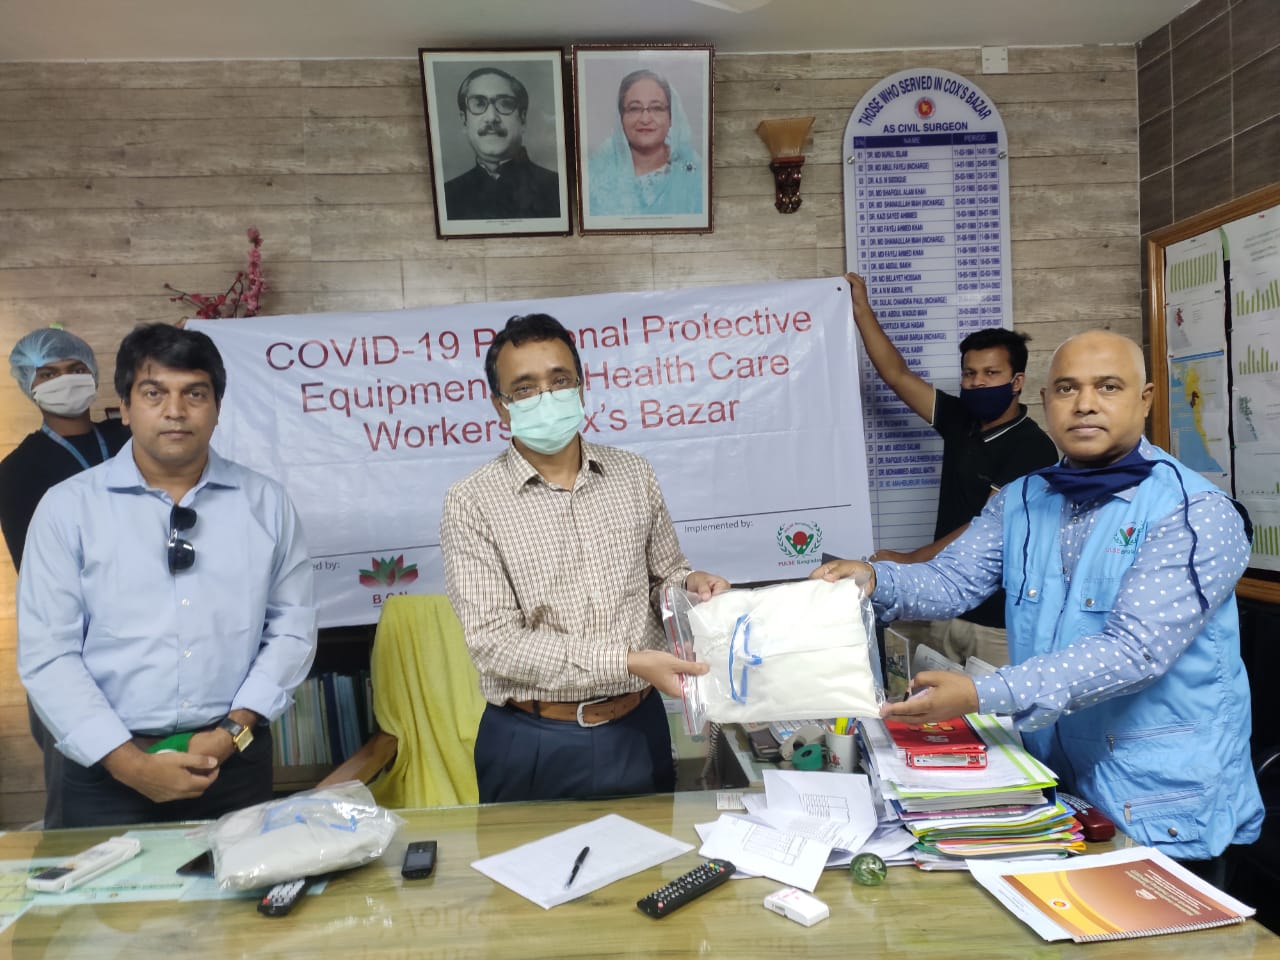 Distribution of COVID-19 Personal Protective Equipment for Health Care Workers at Cox's Bazar